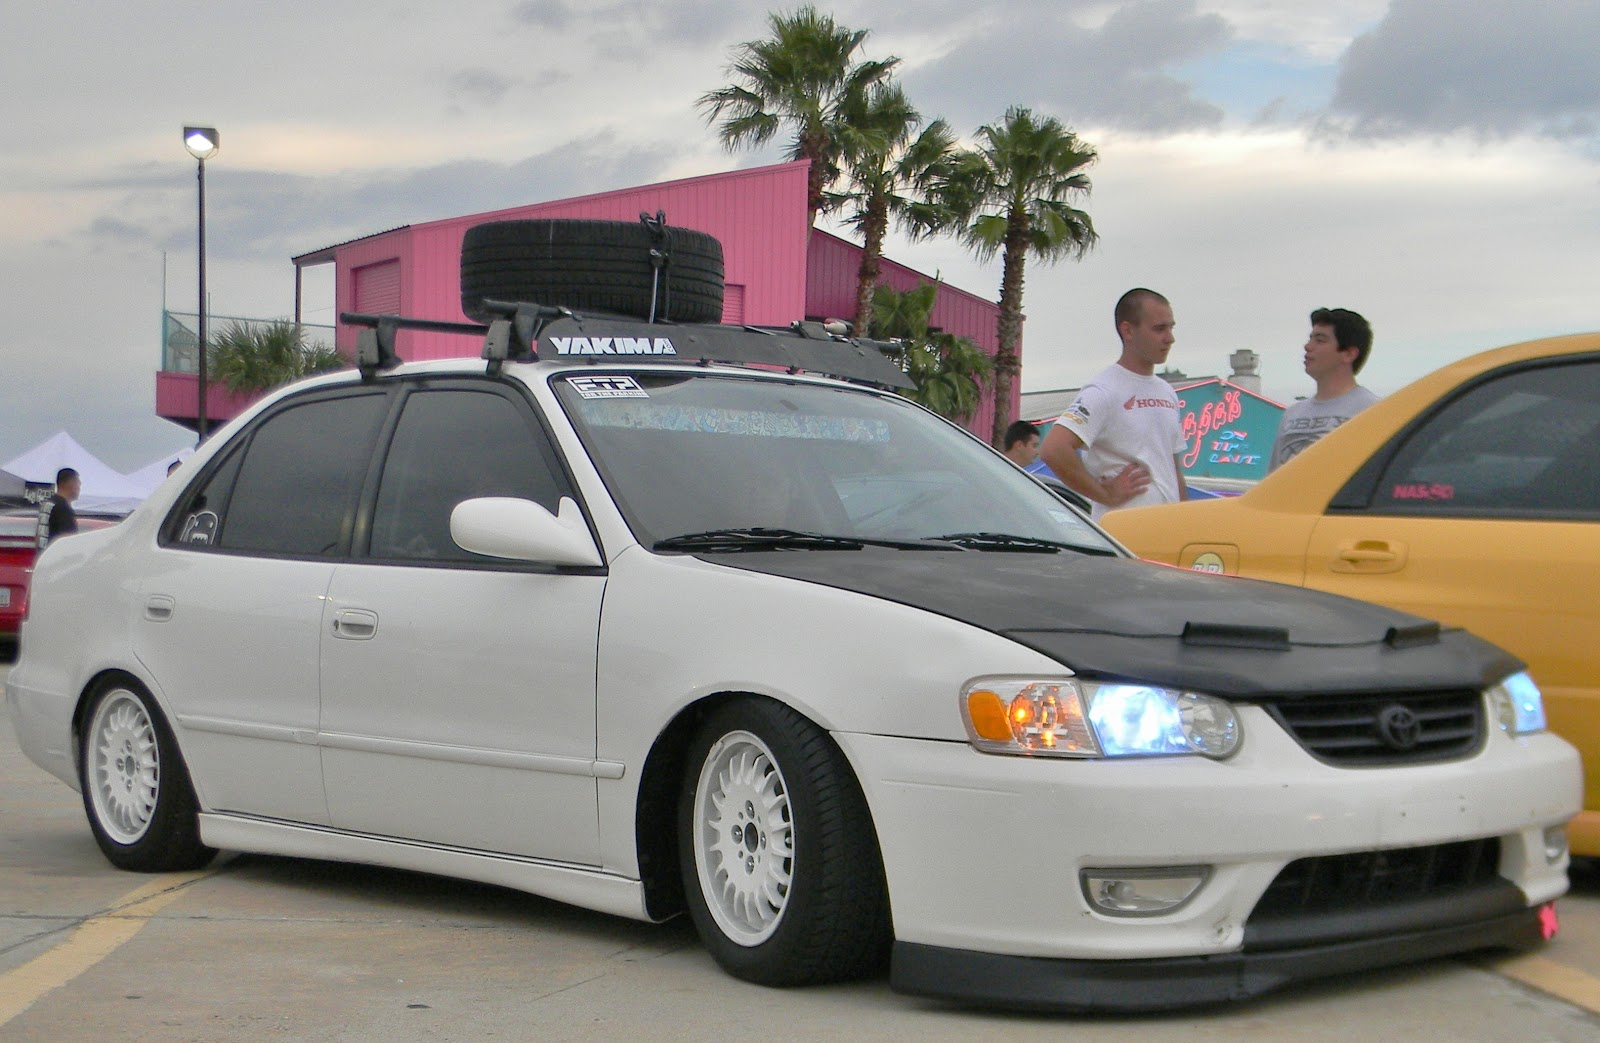 South Texas Stance